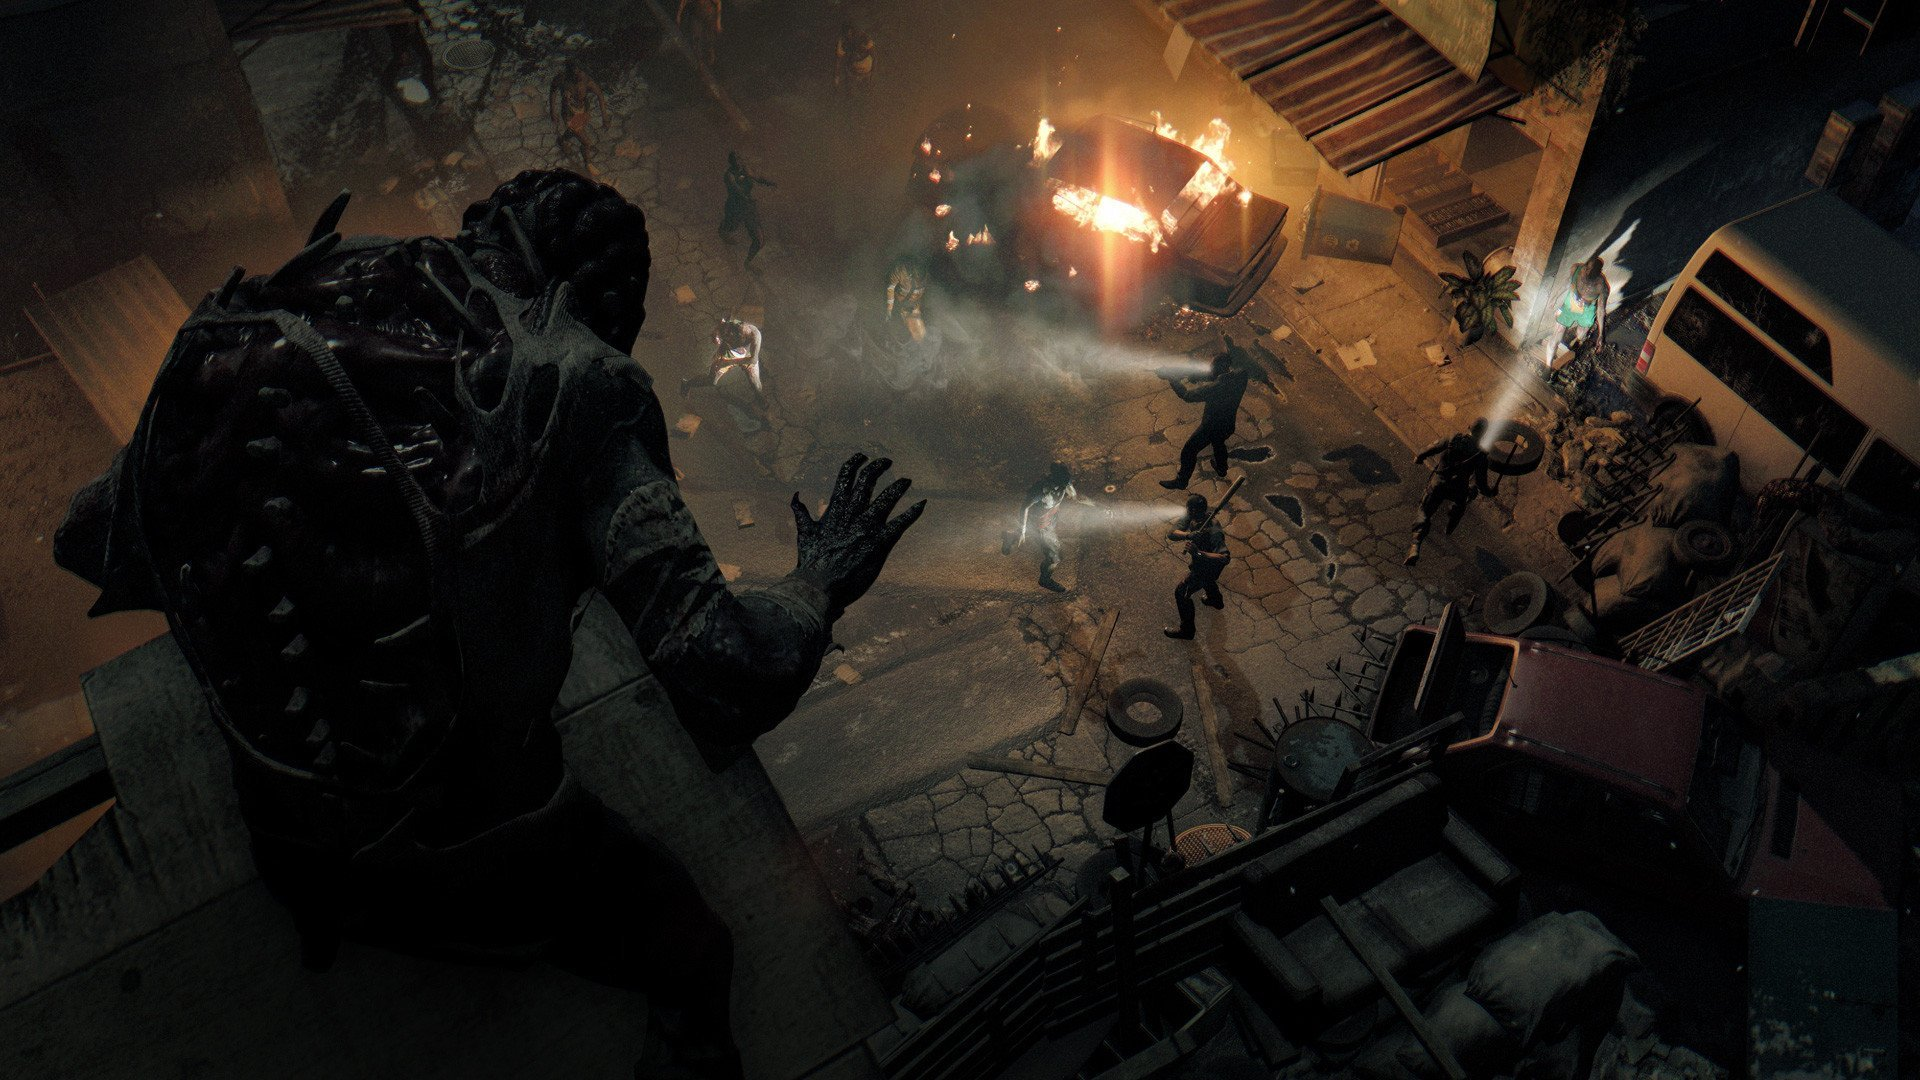 Free Dying Light High Quality Wallpaper Id 54516 For Full Hd 1080p